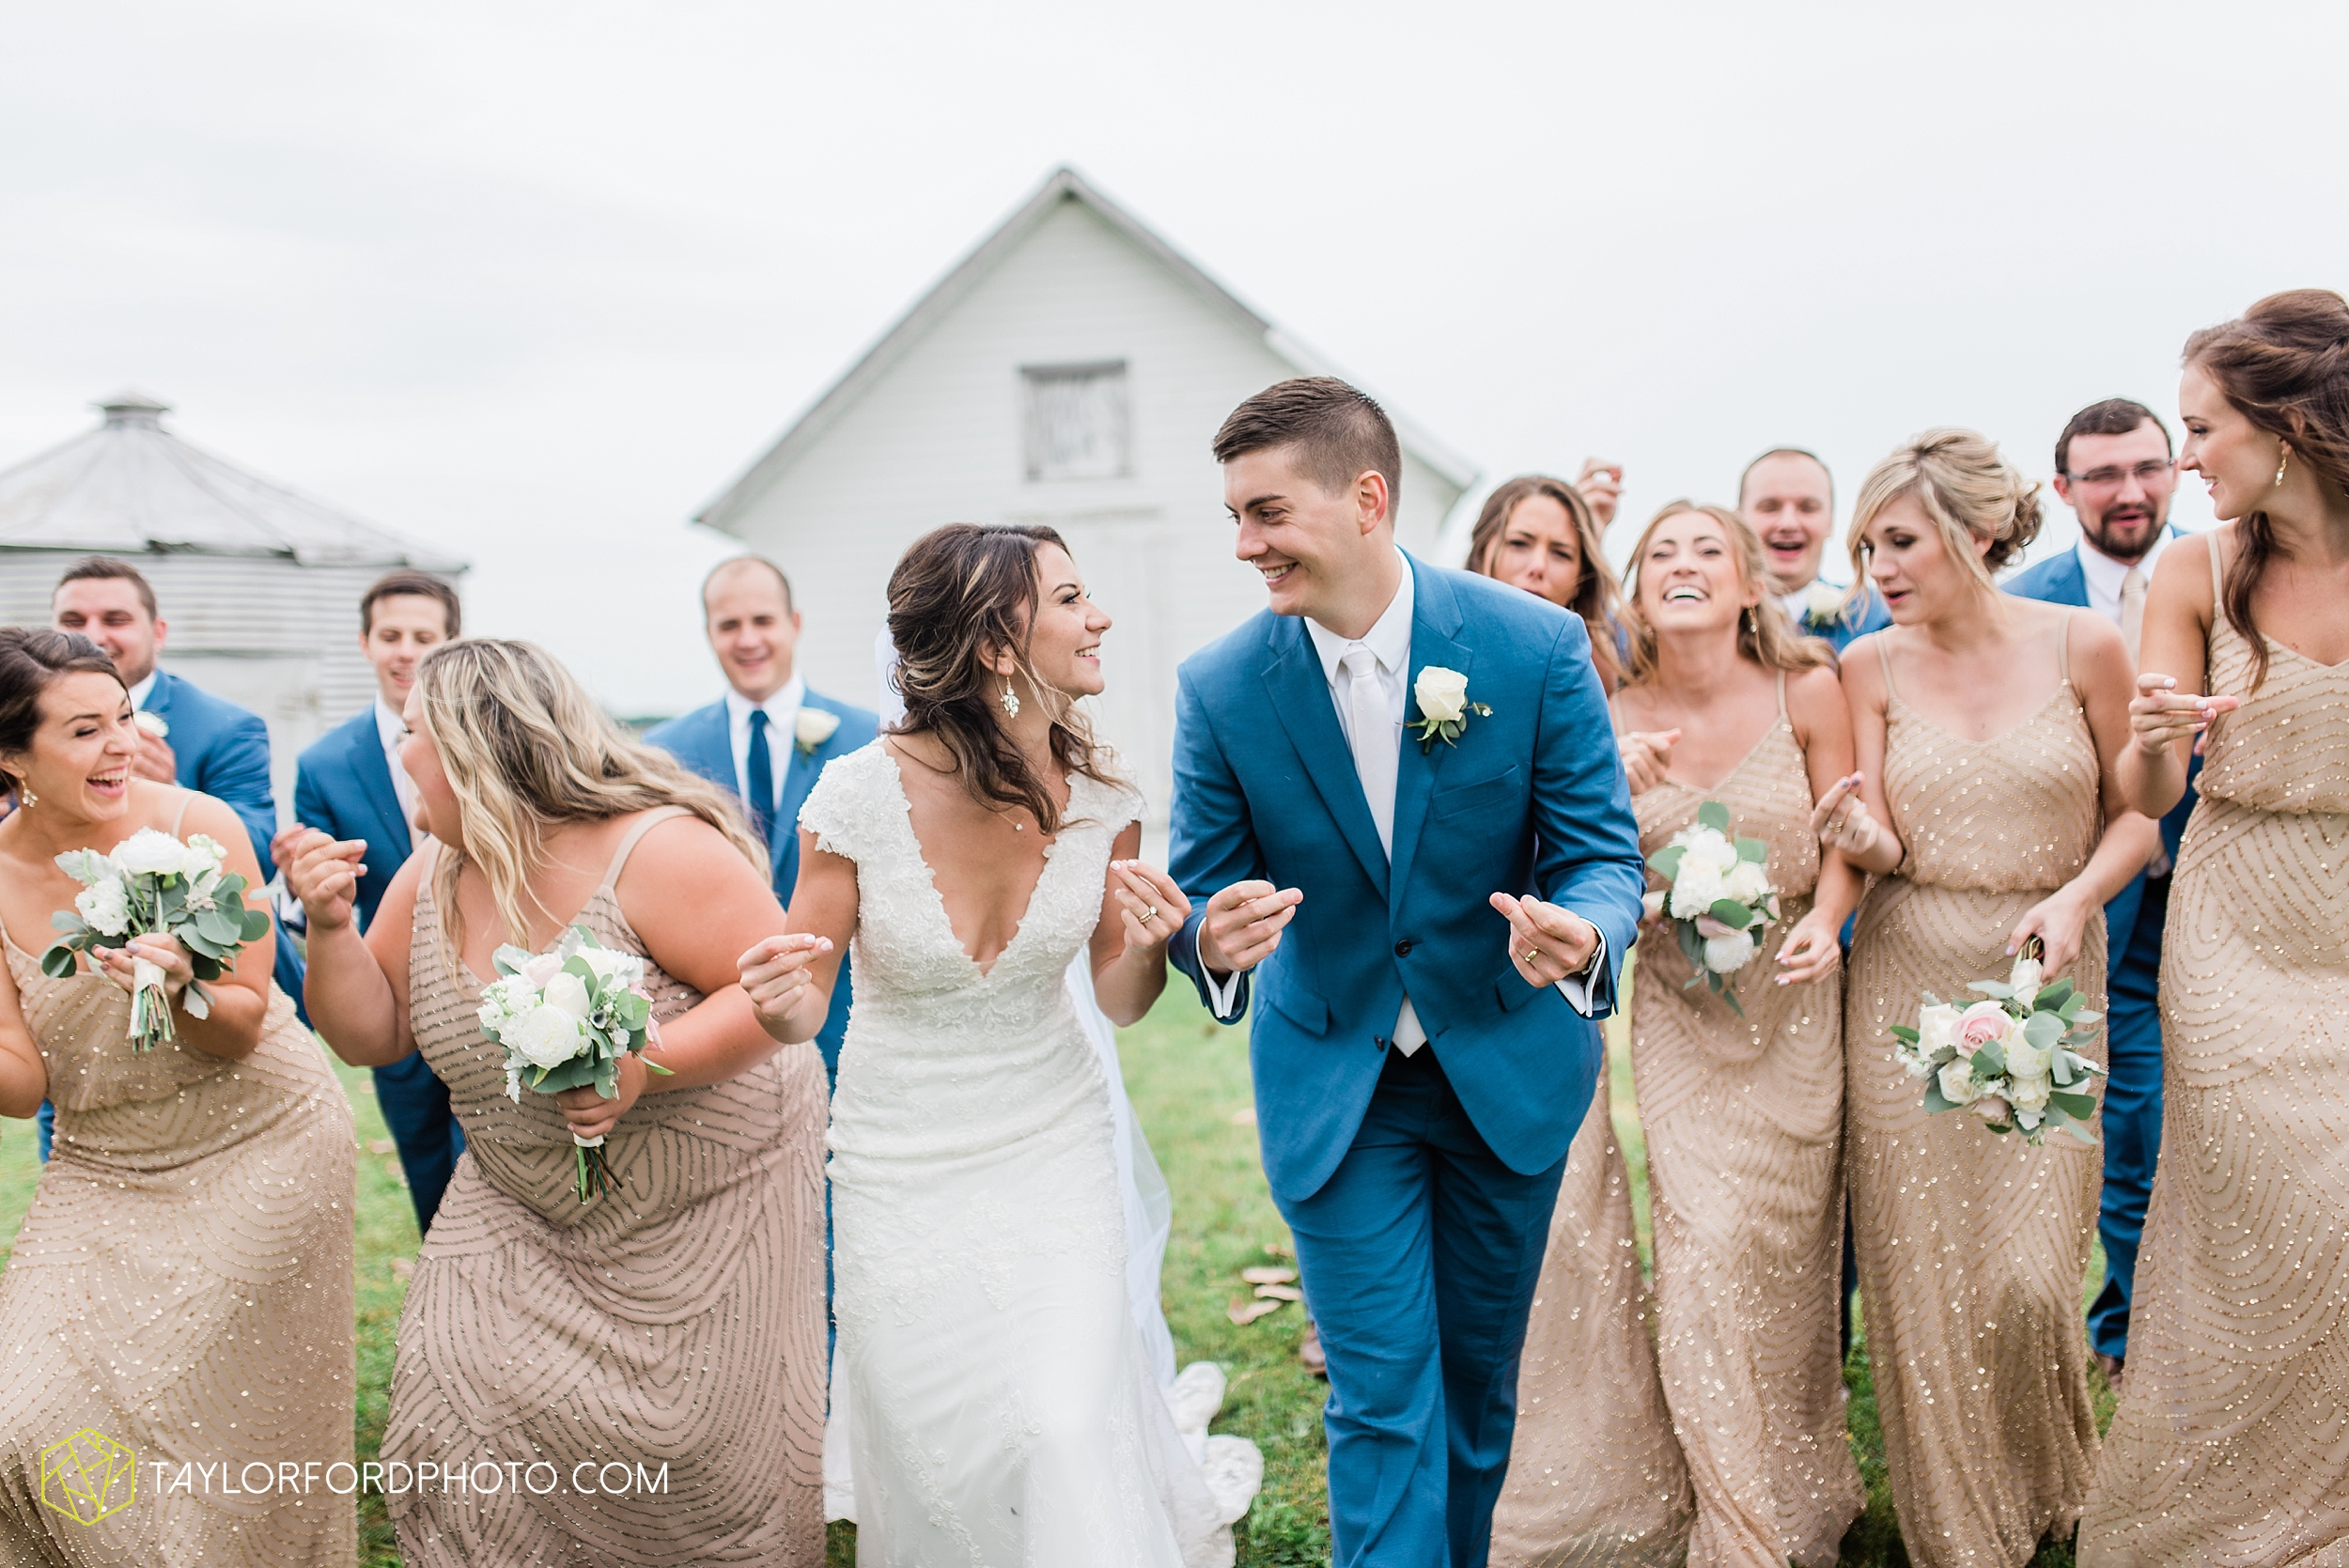 kacee-haden-sholl-second-story-saint-marys-knights-of-columbus-defiance-ohio-wedding-photographer-taylor-ford-photography_0174.jpg